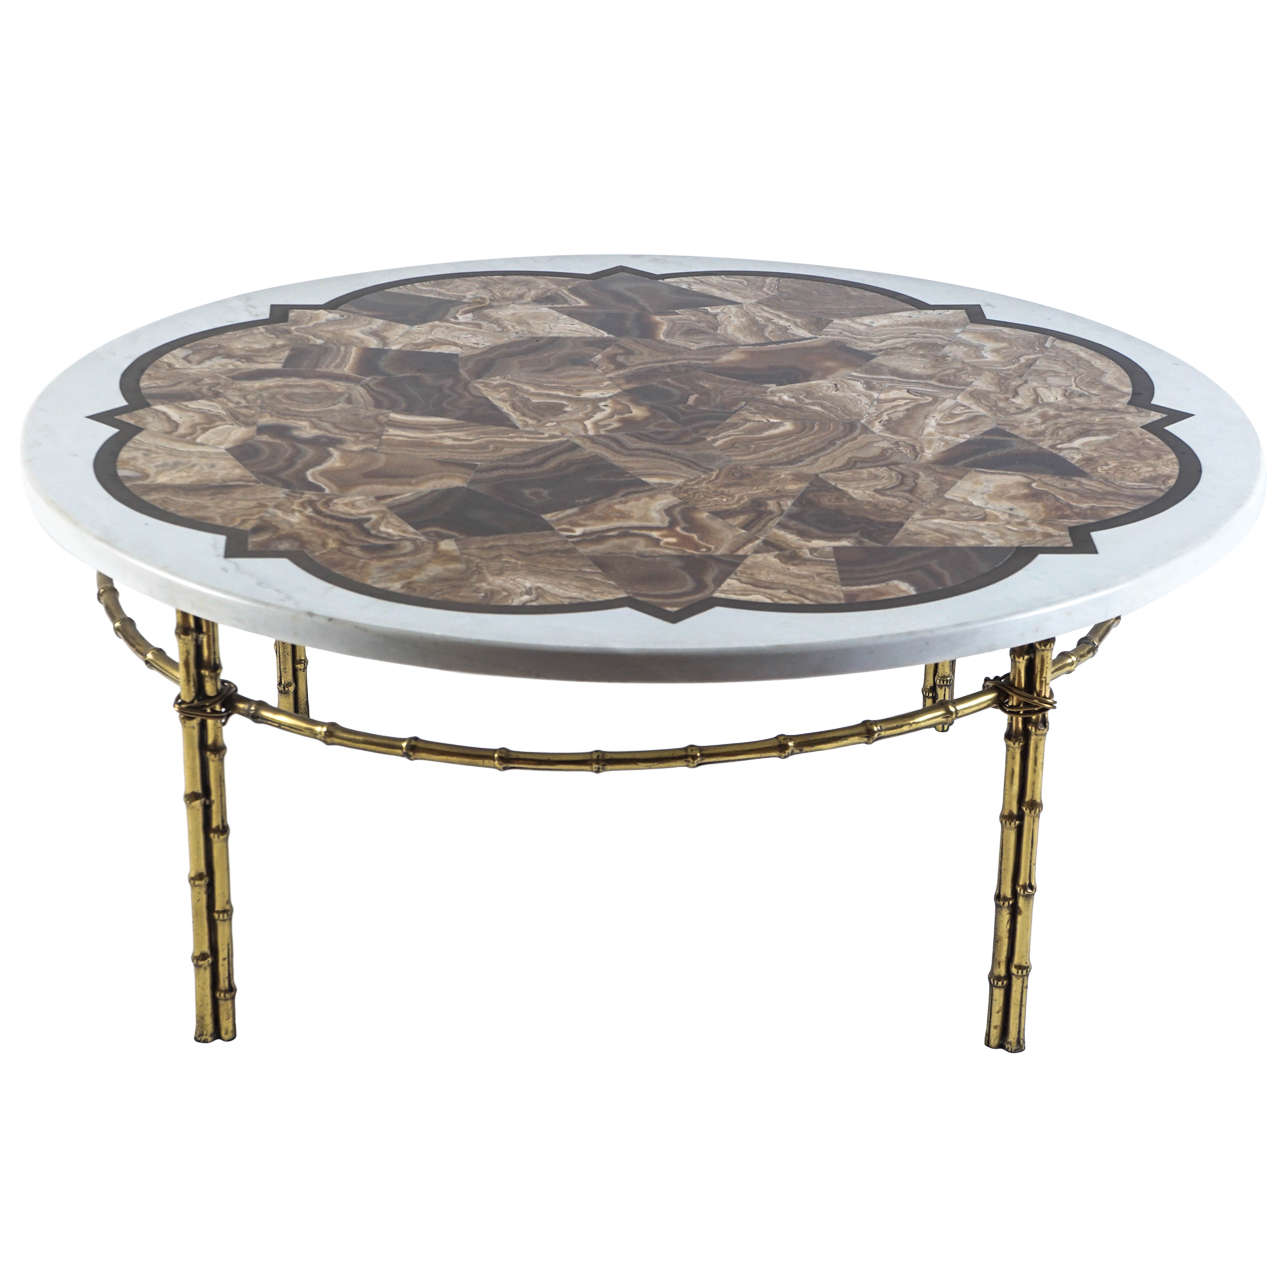 Agate marble and brass round cocktail table at 1stdibs Round marble coffee tables